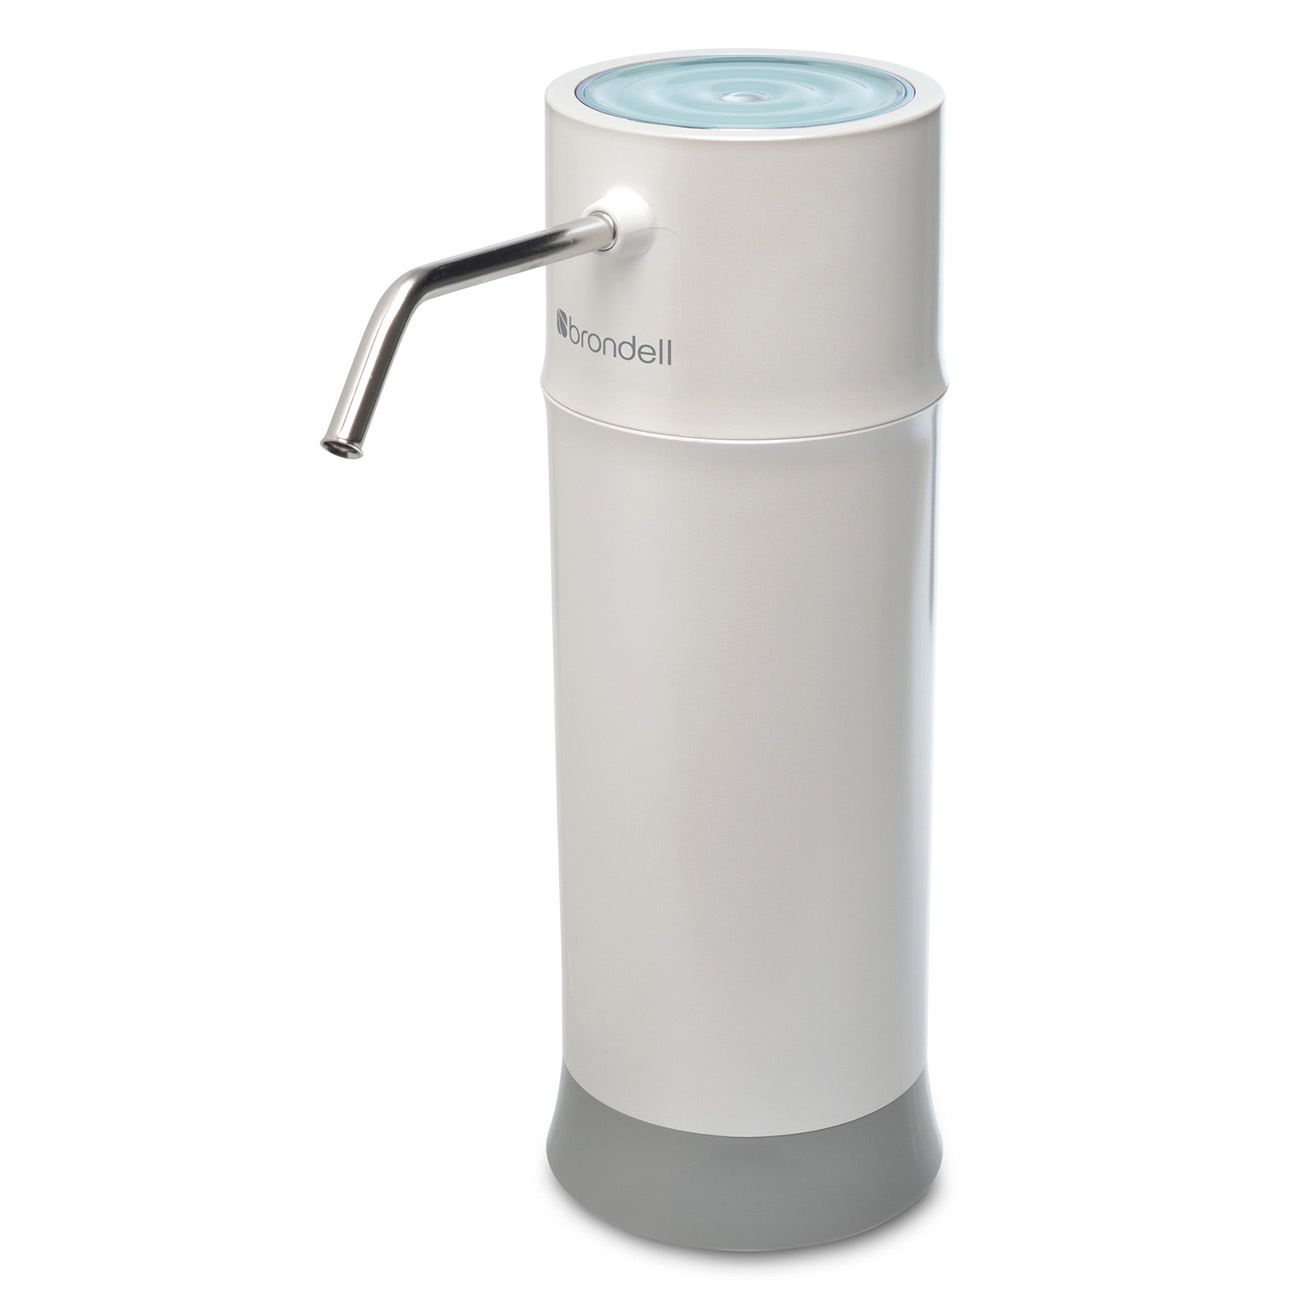 Brondell Pearl H625 Countertop Water Filtration System - Image 1